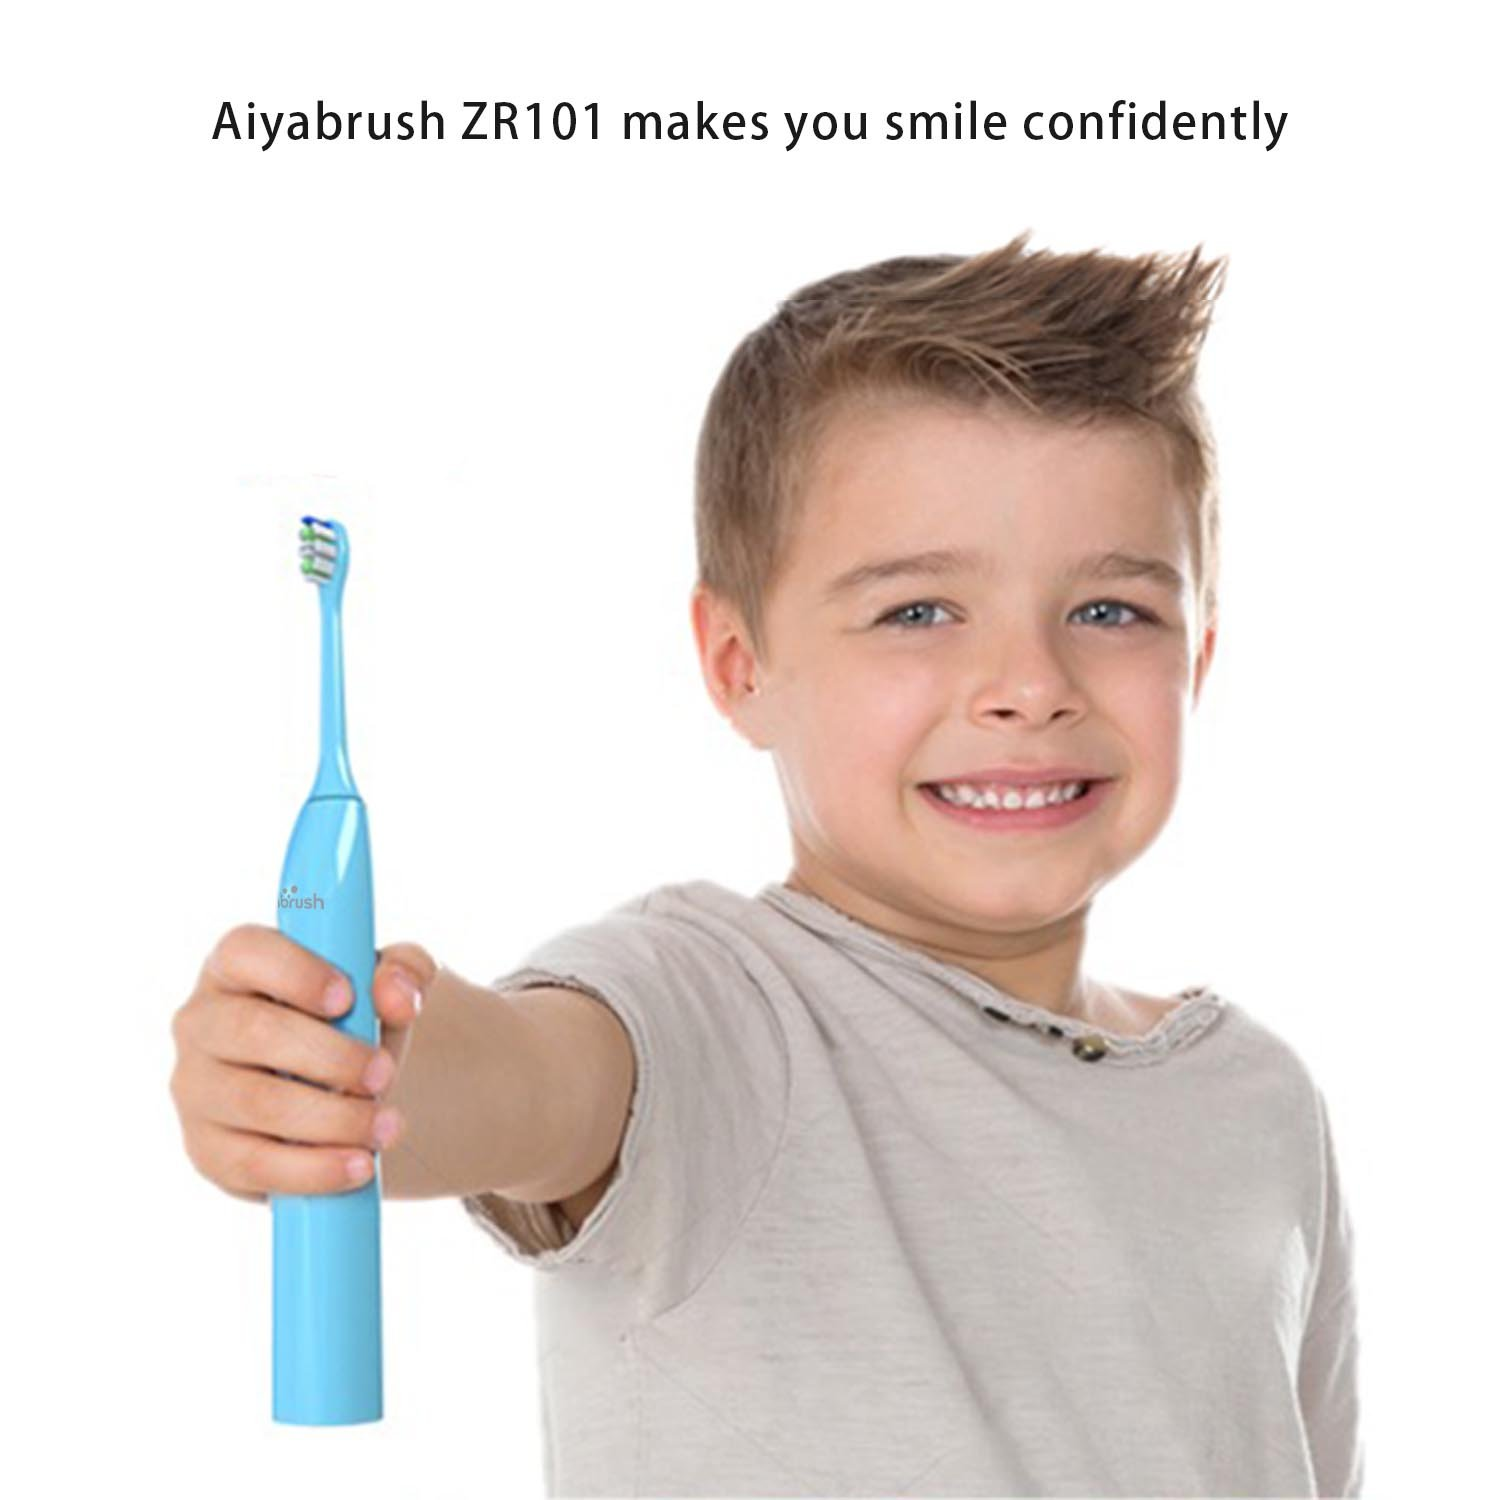 Sonic Electric Toothbrush for Kids 3-12 Years Aiyabrush 30s brushing reminder Rechargeable Toothbrushes with 2000mAh capacity battery 100 Days Use on One Charge waterproof IPX7 (Blue) by aiyabrush (Image #8)